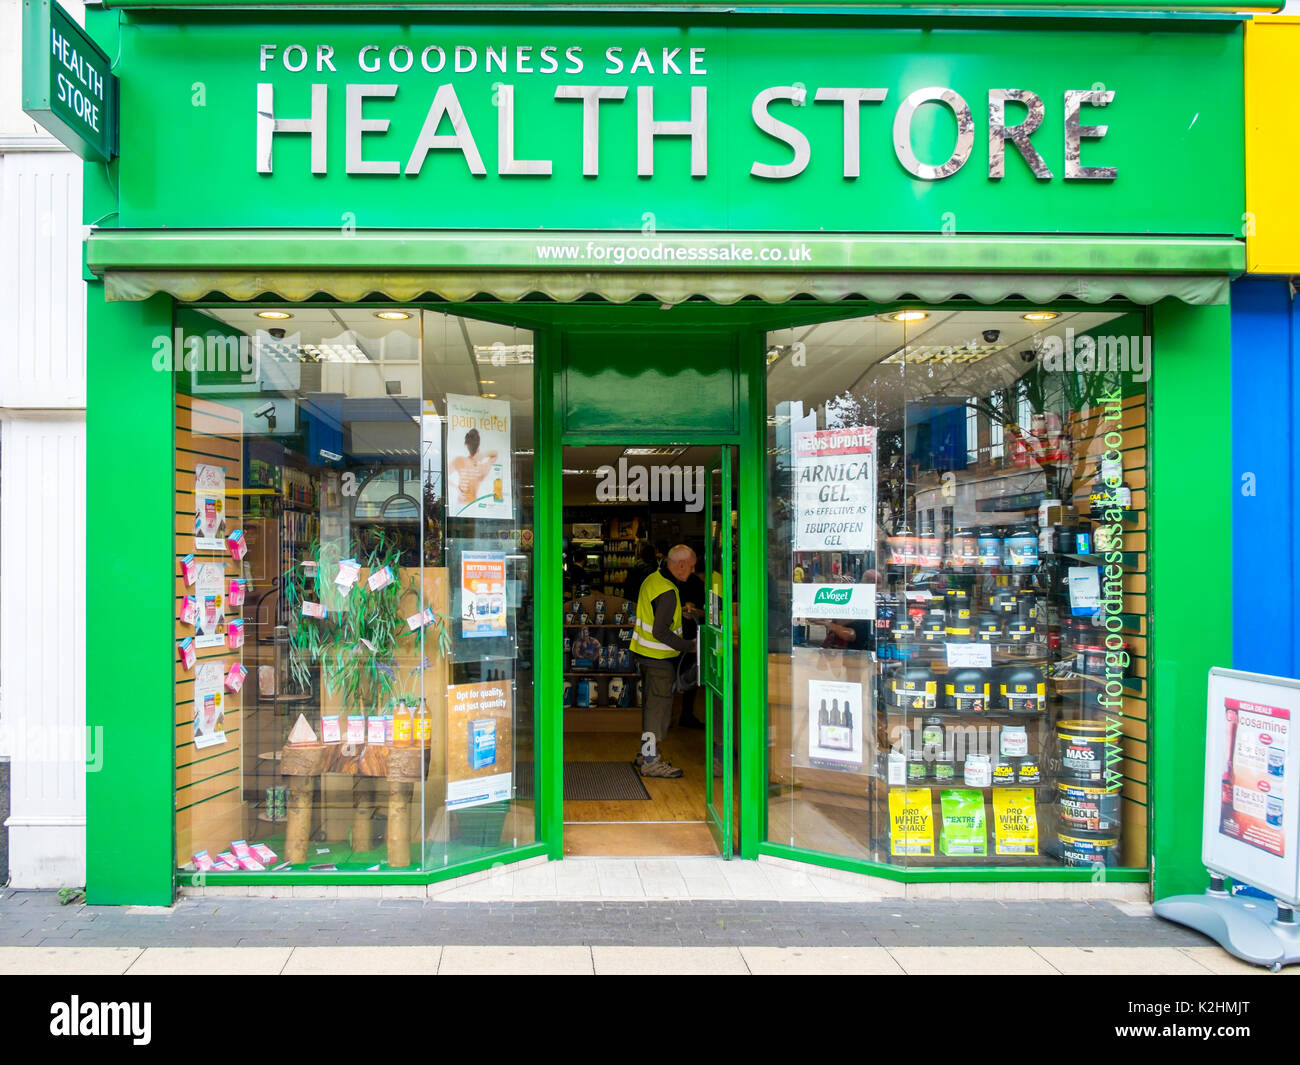 For Goodness Sake Health Shop displaying a variety of patent medicines and food supplements - Stock Image